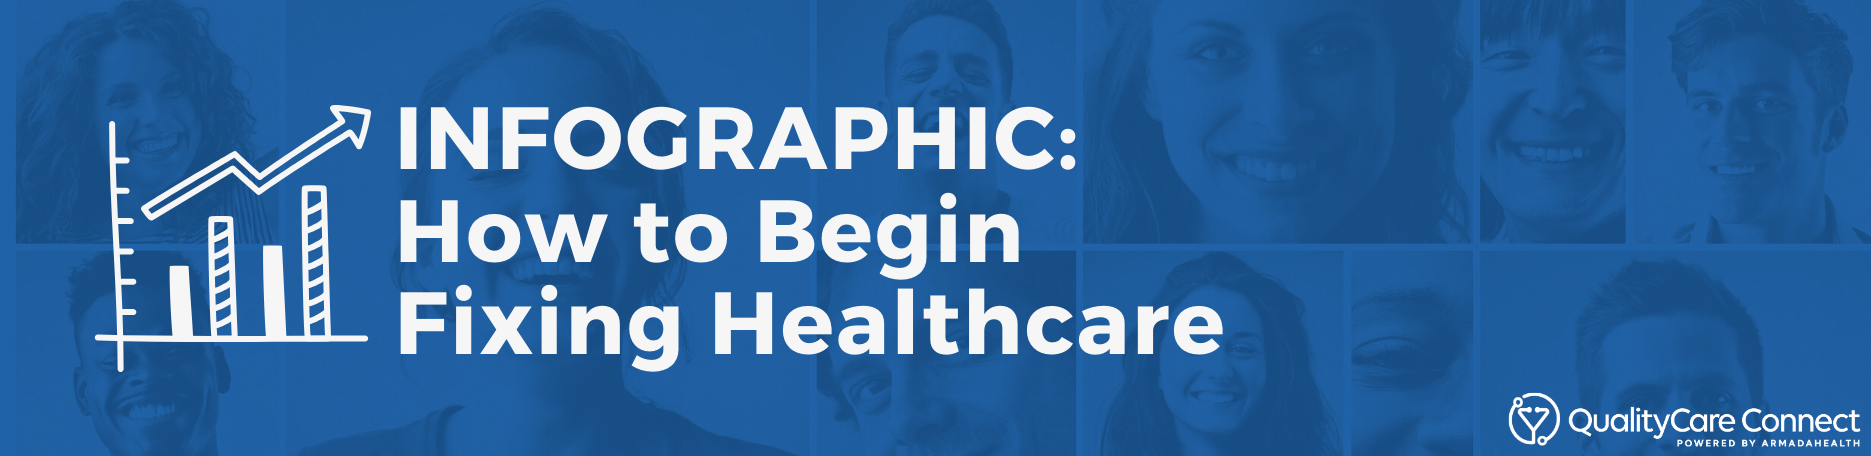 Infographic banner - How to Begin Fixing Healthcare